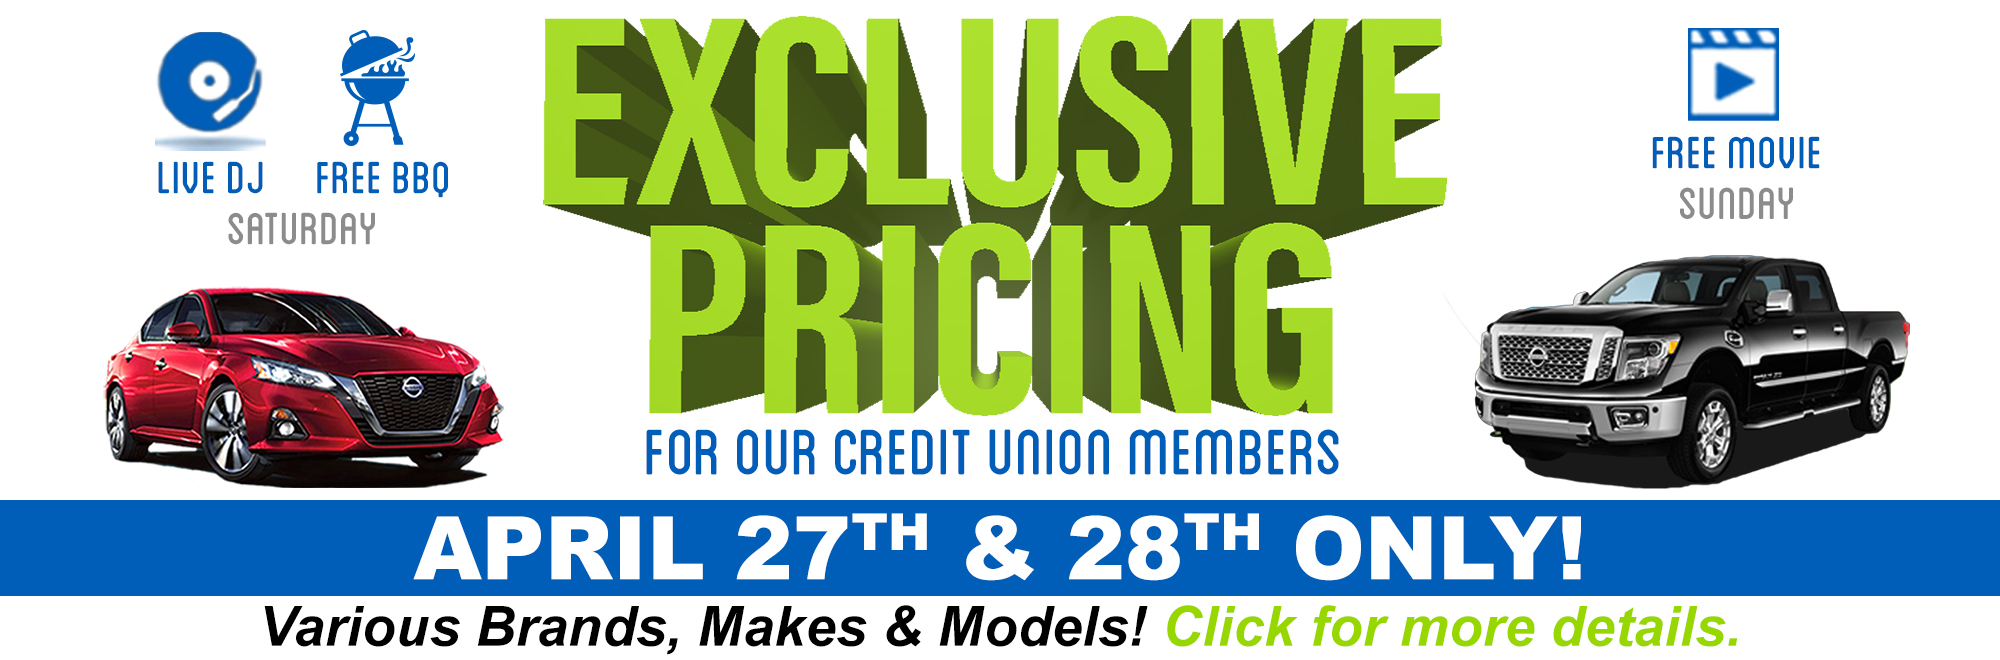 Exclusive Pricing for our credit union members at Wesley Chapel Nissan on April 27 and 28